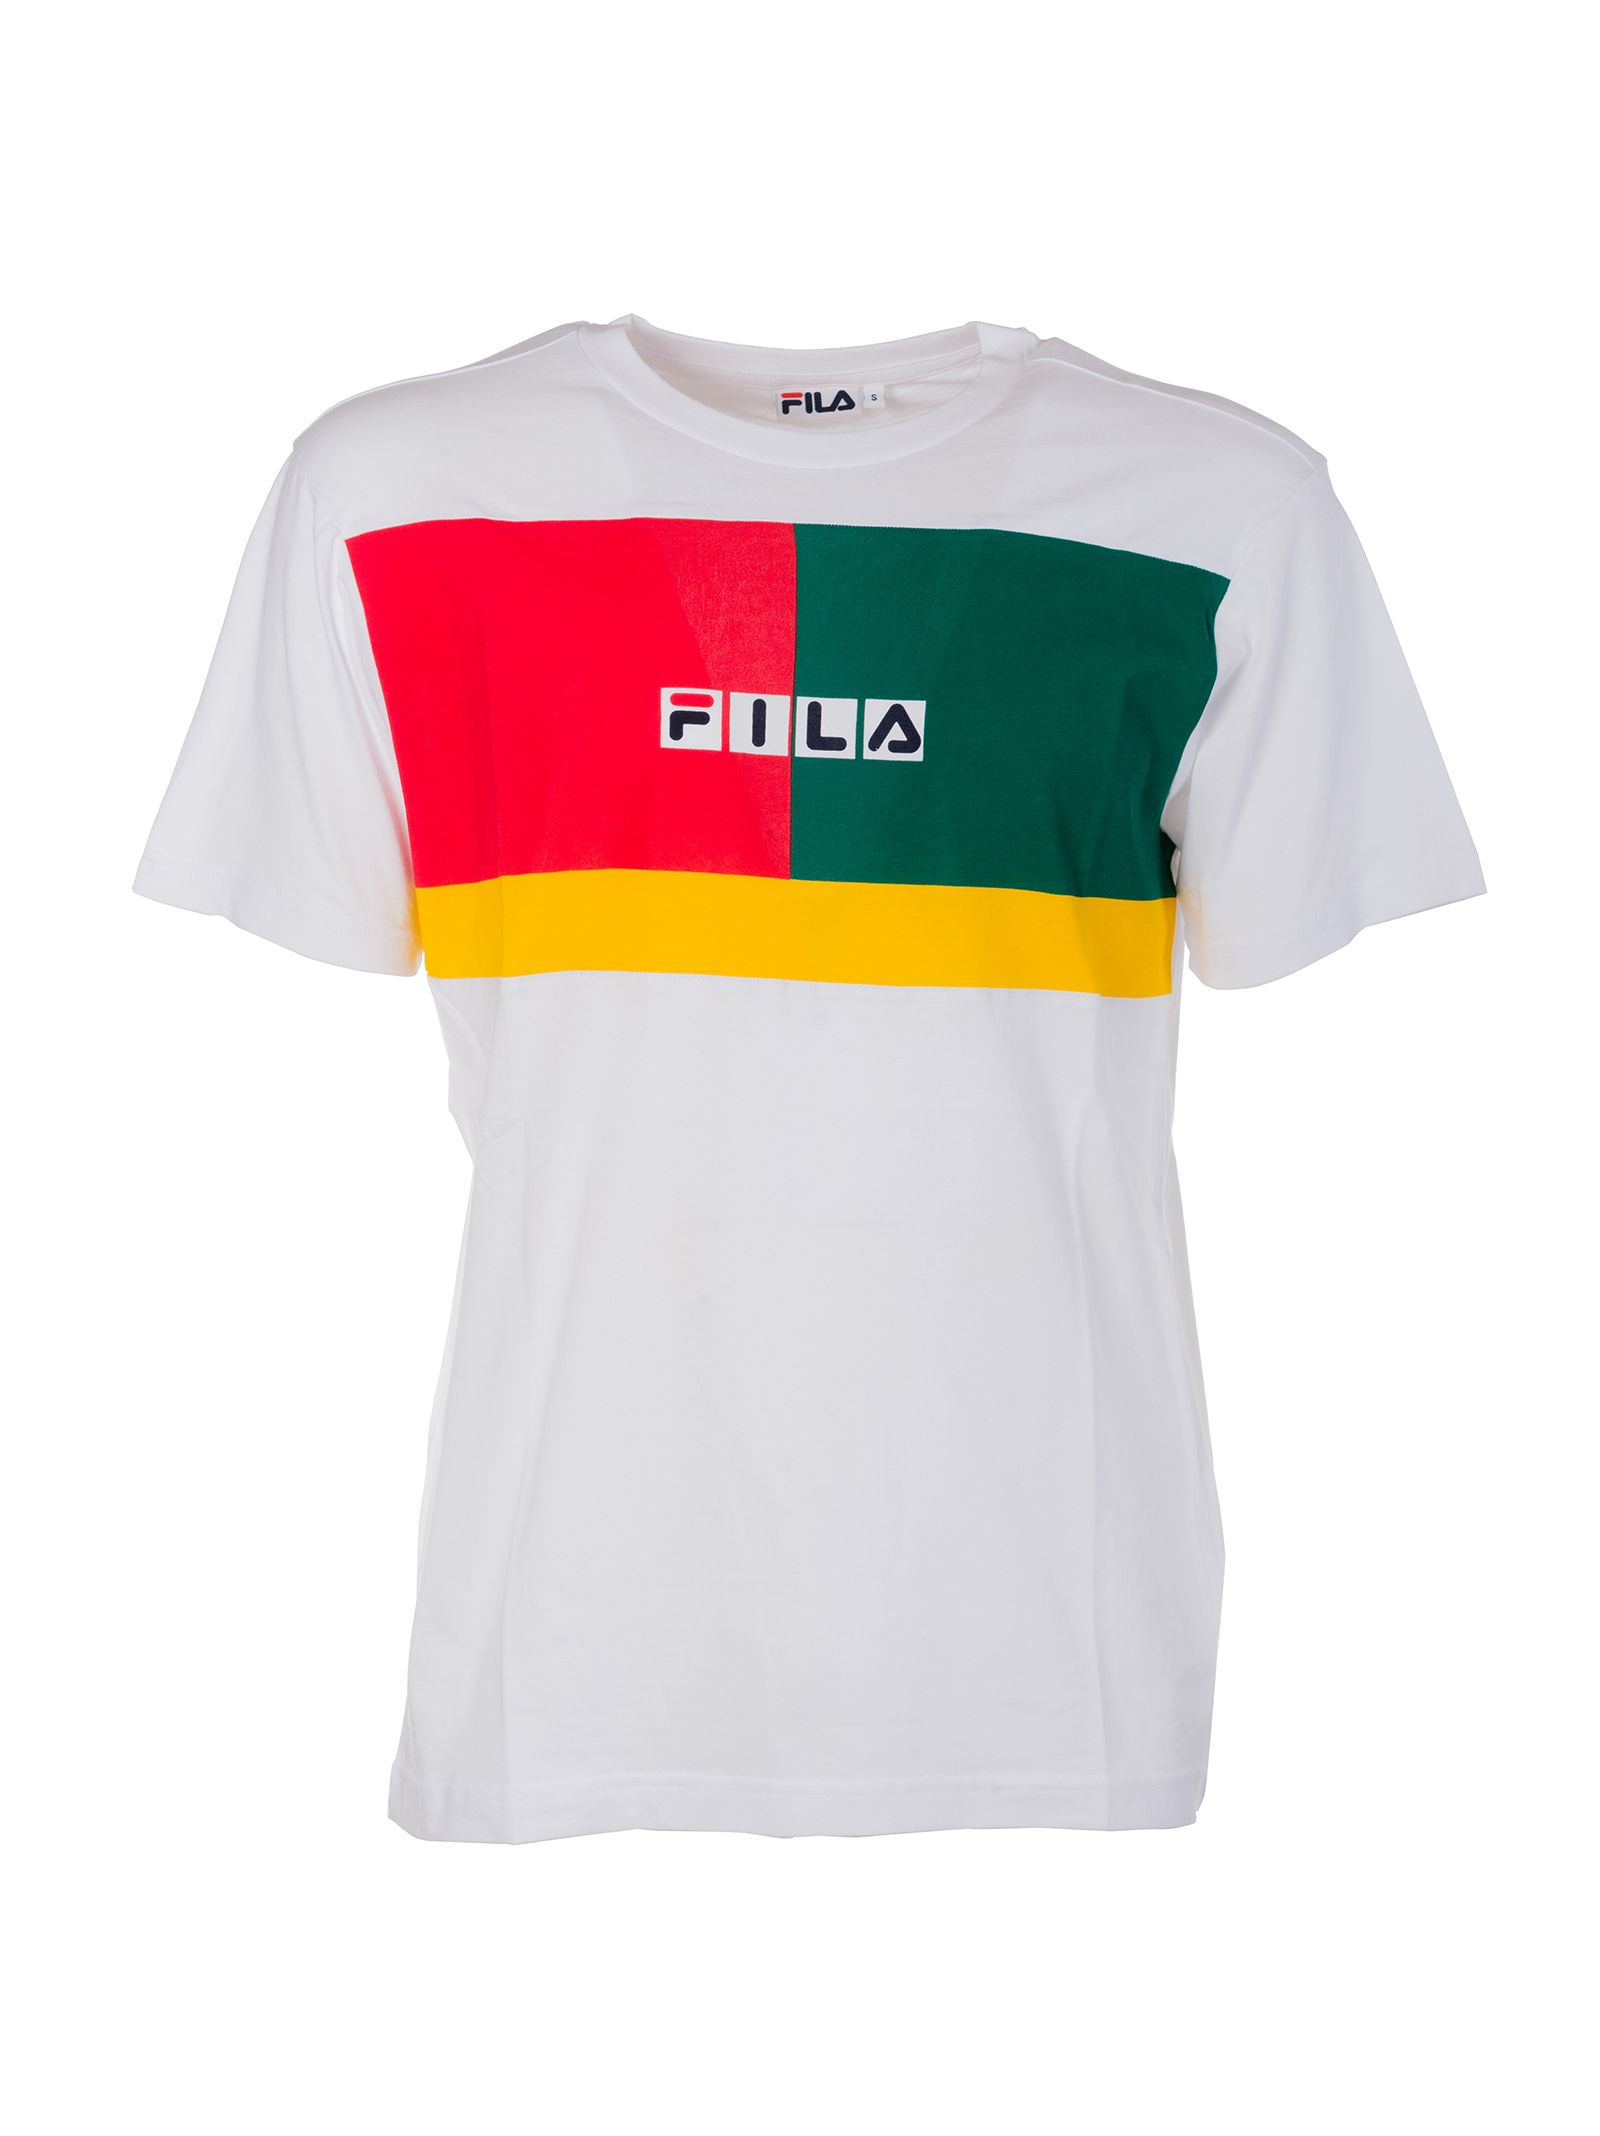 e335022981a76b FILA ANTONY. #fila #cloth | Fila in 2019 | Tshirt colors, T shirt ...